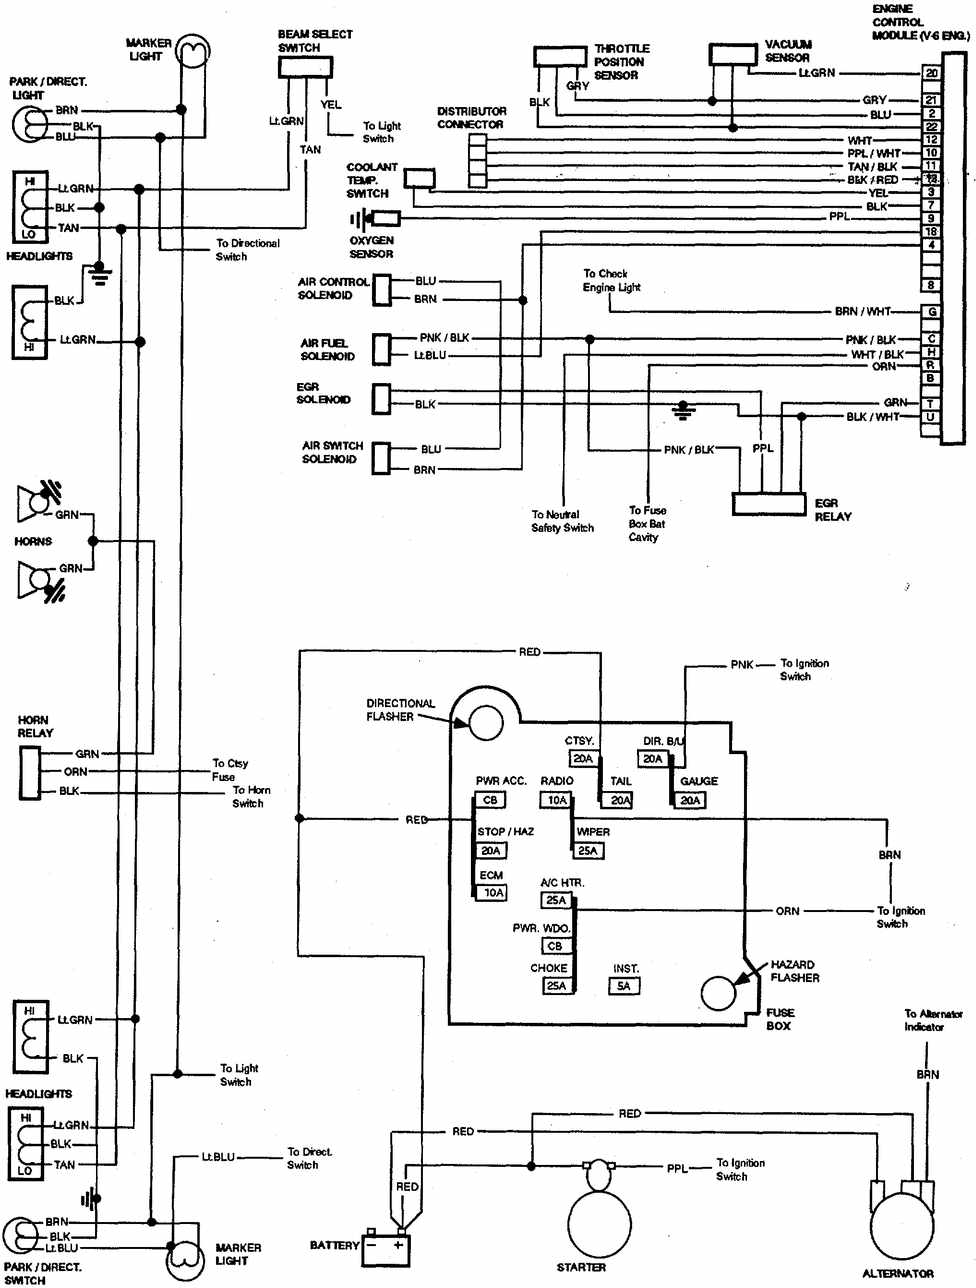 1985 gm steering column wiring diagram